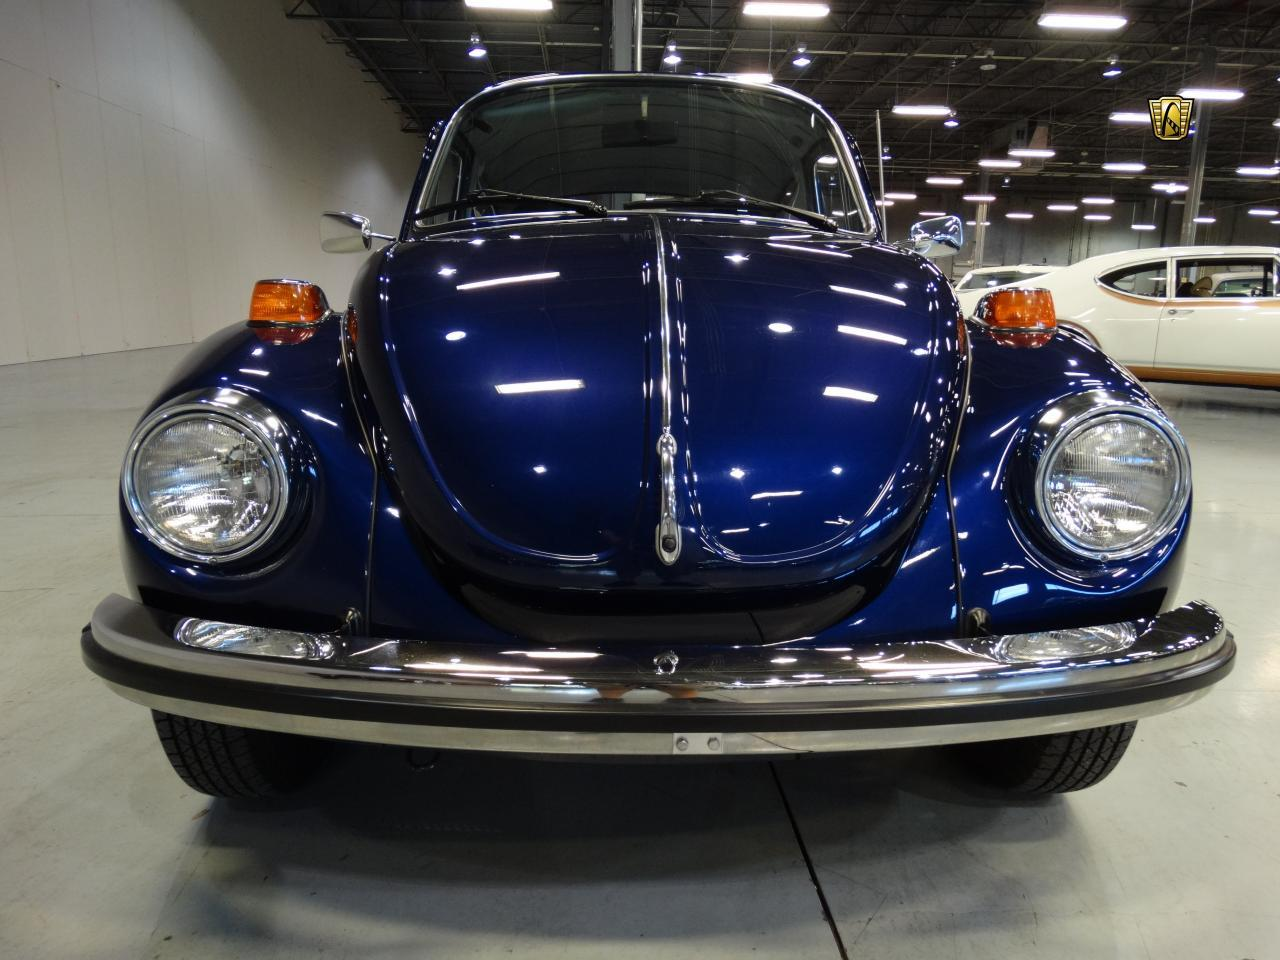 Large Picture of Classic '73 Volkswagen Beetle located in Lake Mary Florida - $20,595.00 Offered by Gateway Classic Cars - Orlando - KDKC